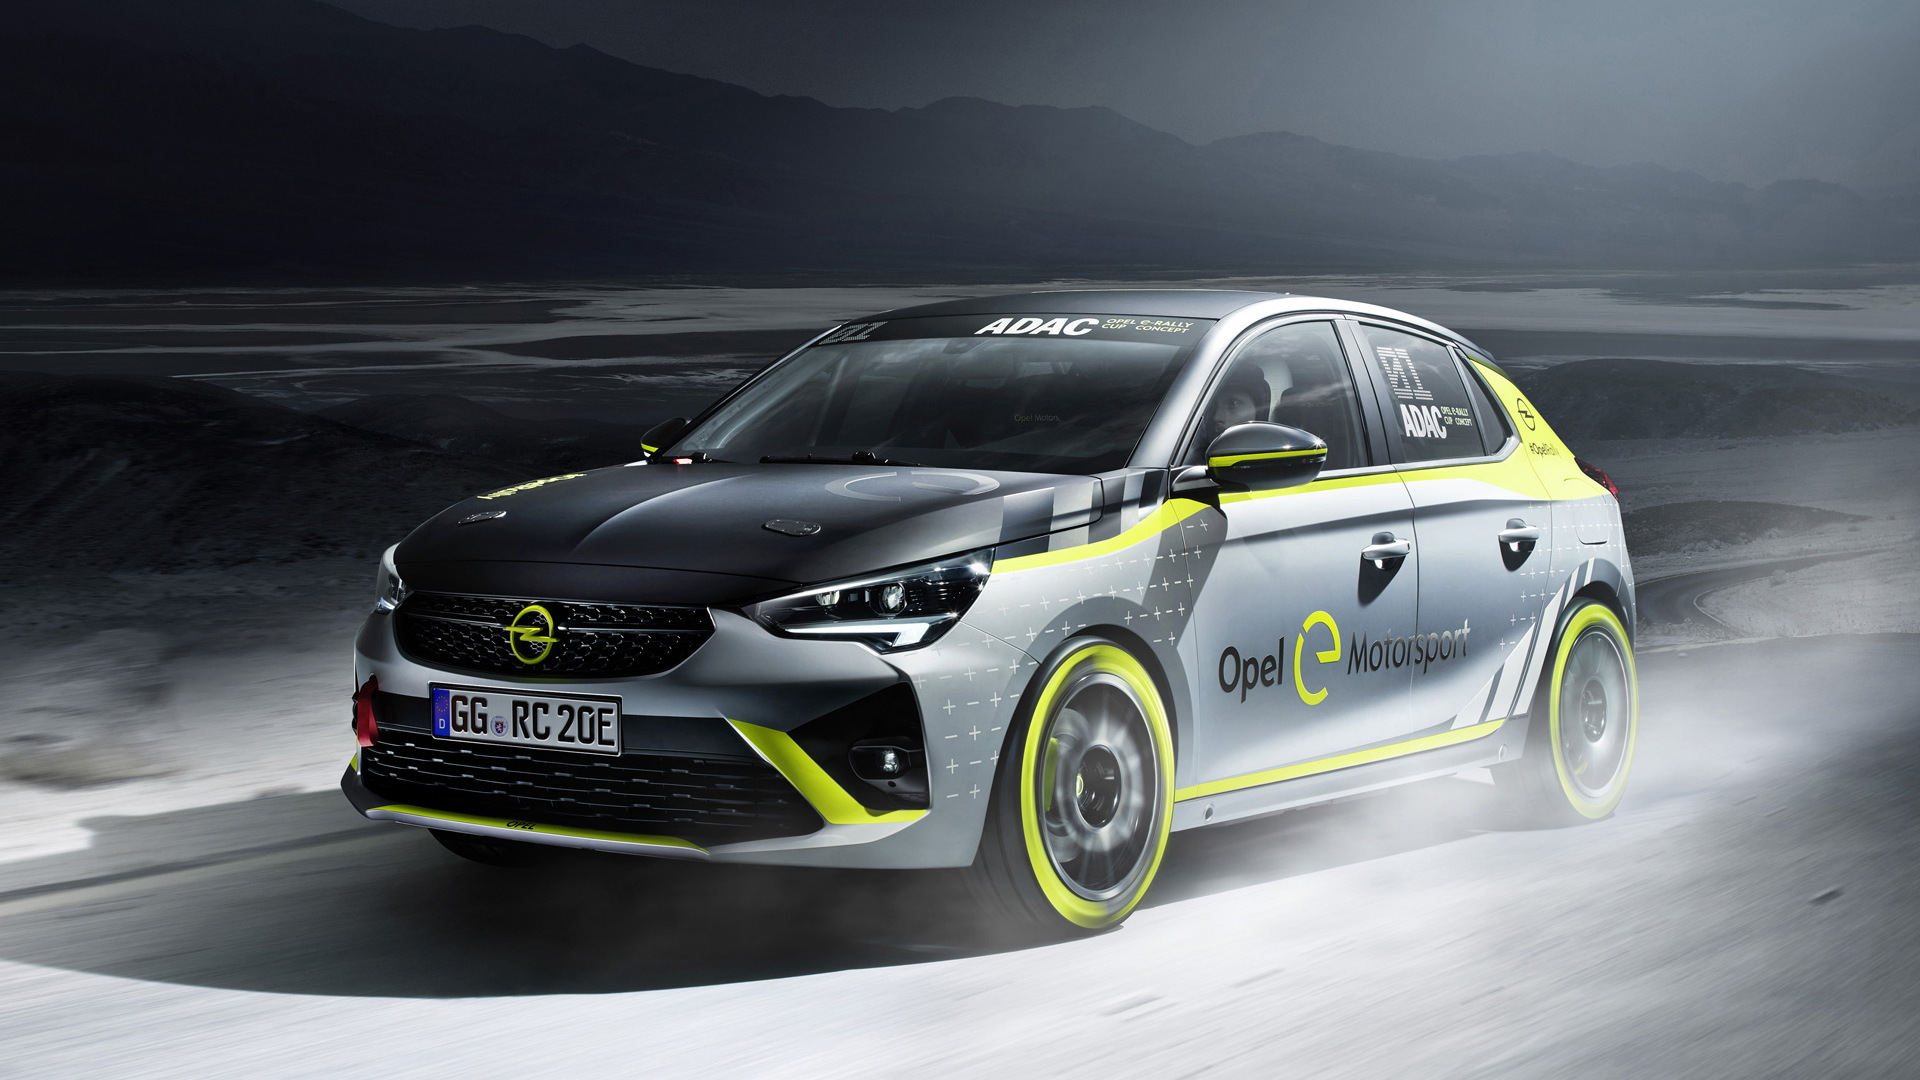 2020 Opel Corsa-e ADAC Opel e-Rally Cup electric rally car